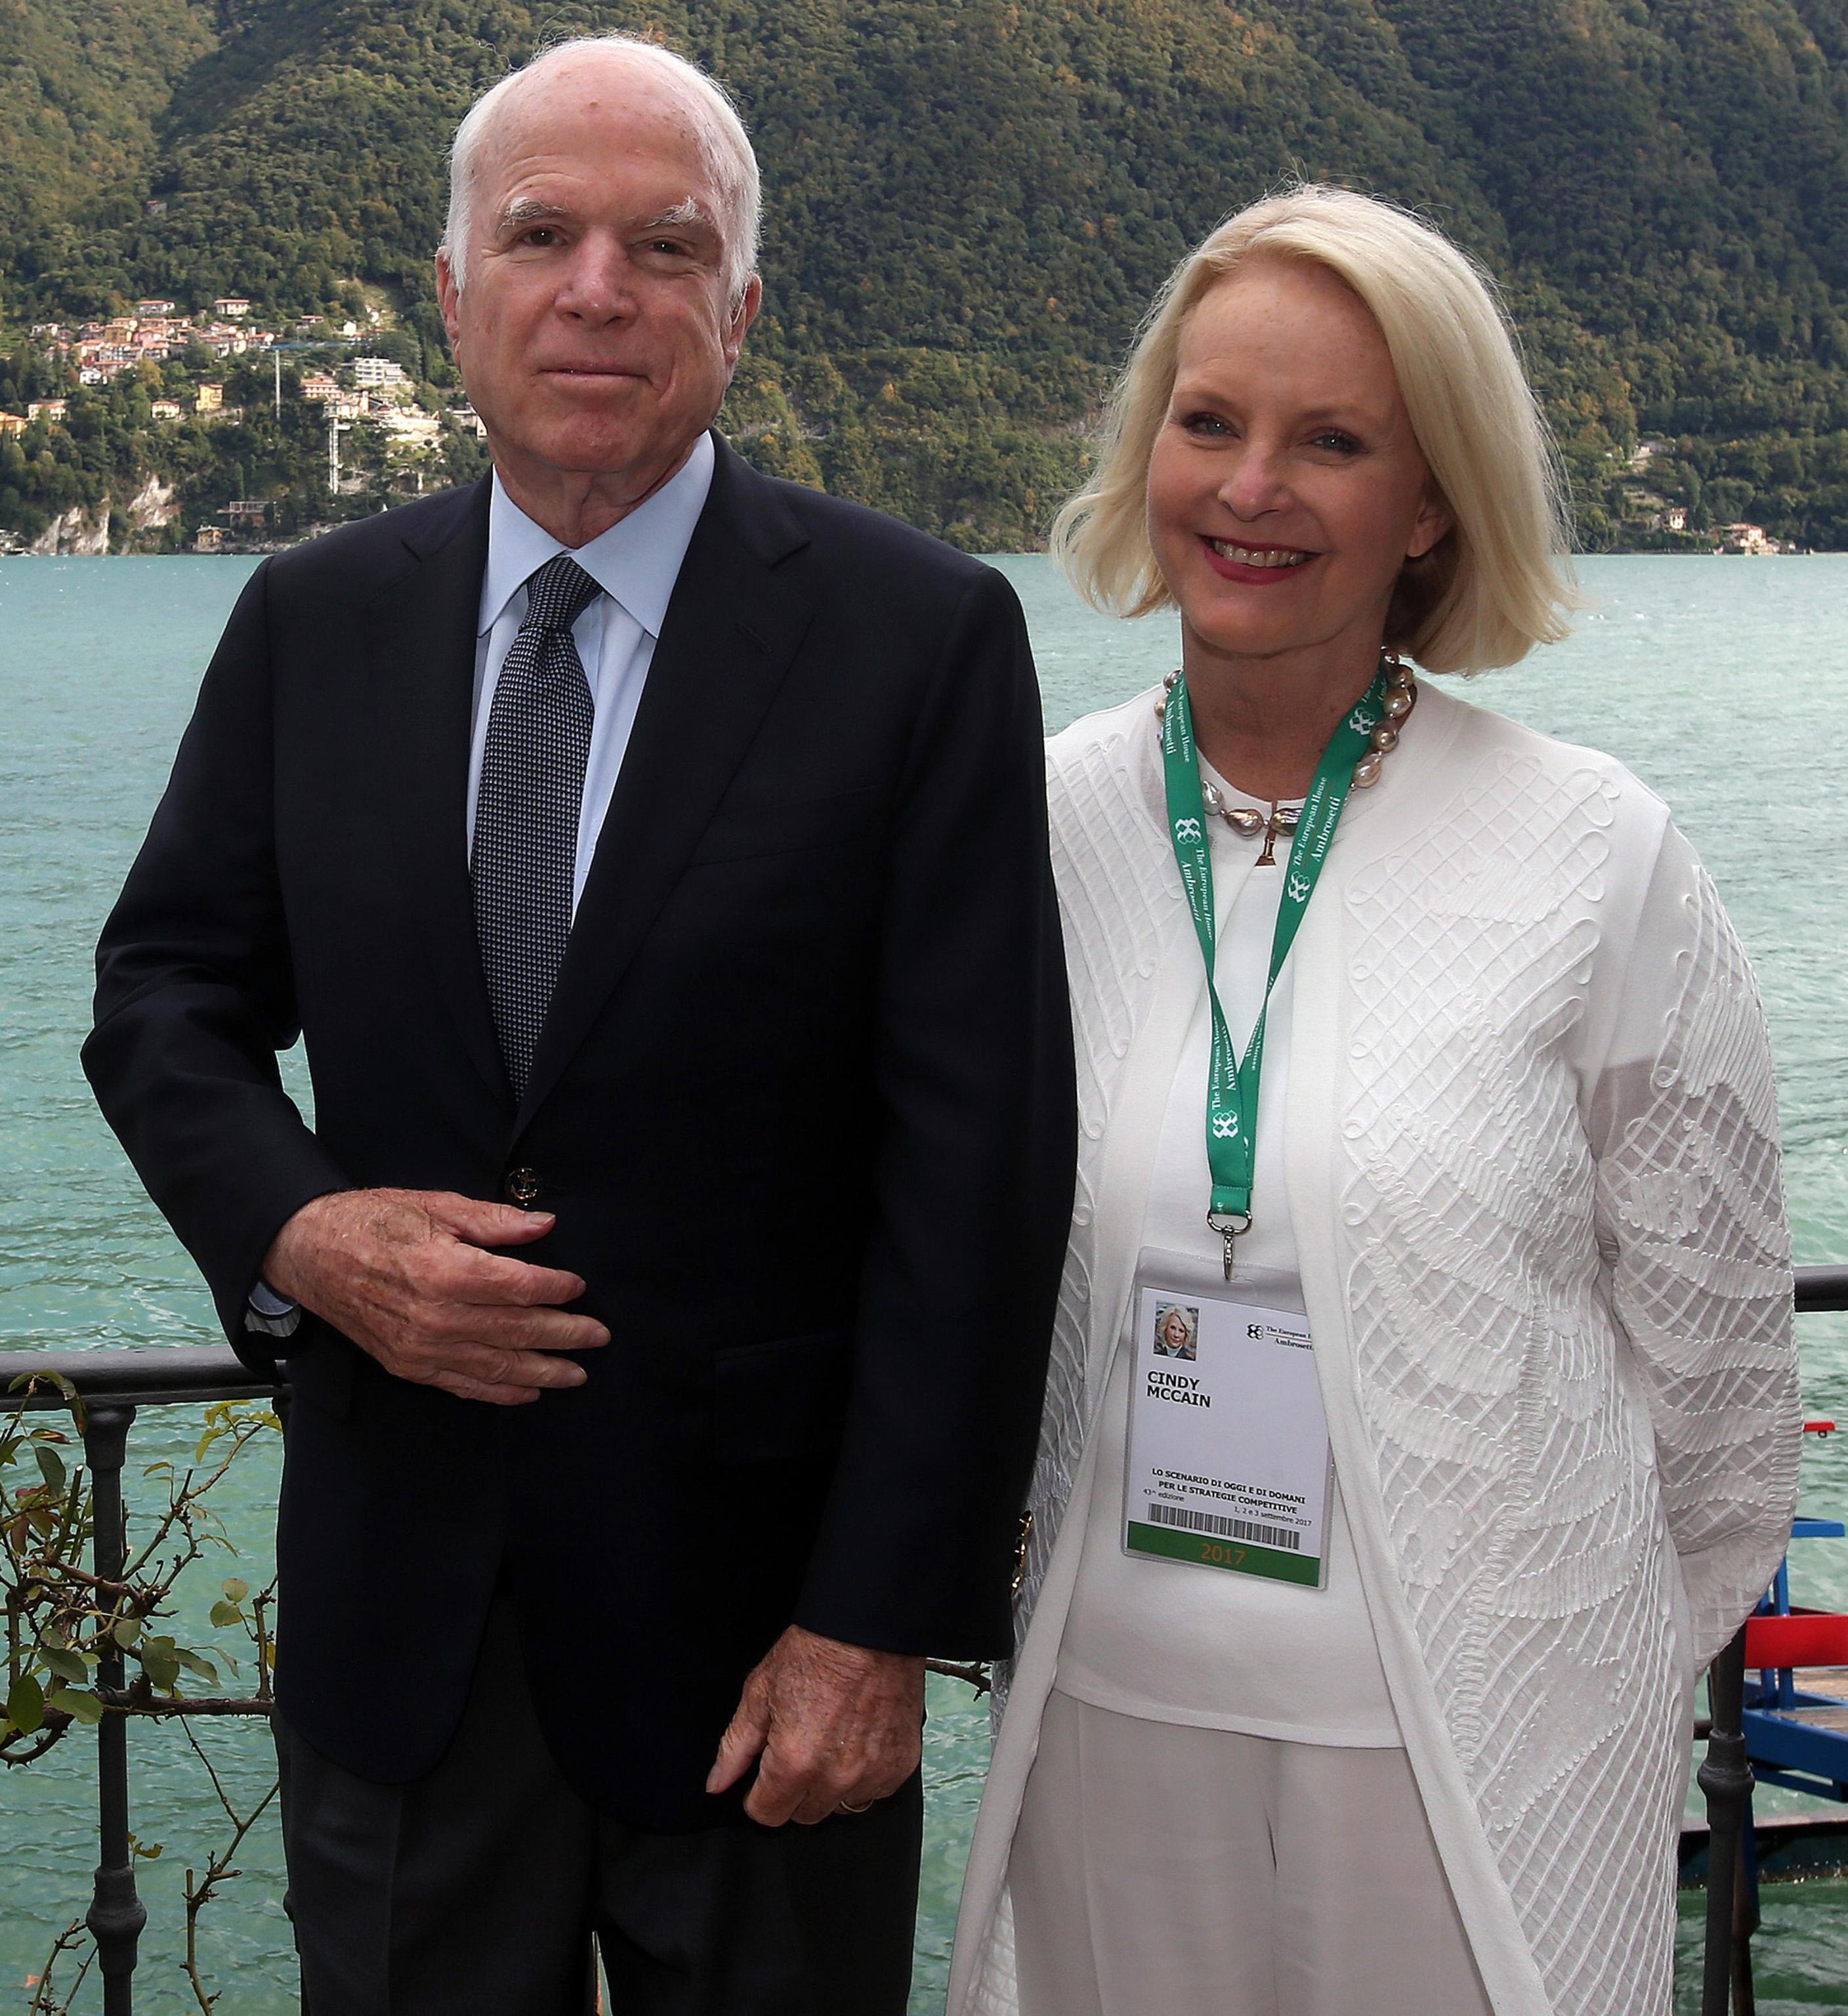 Mccain Family: McCain Attends Italy Forum Before Congress Returns To Work